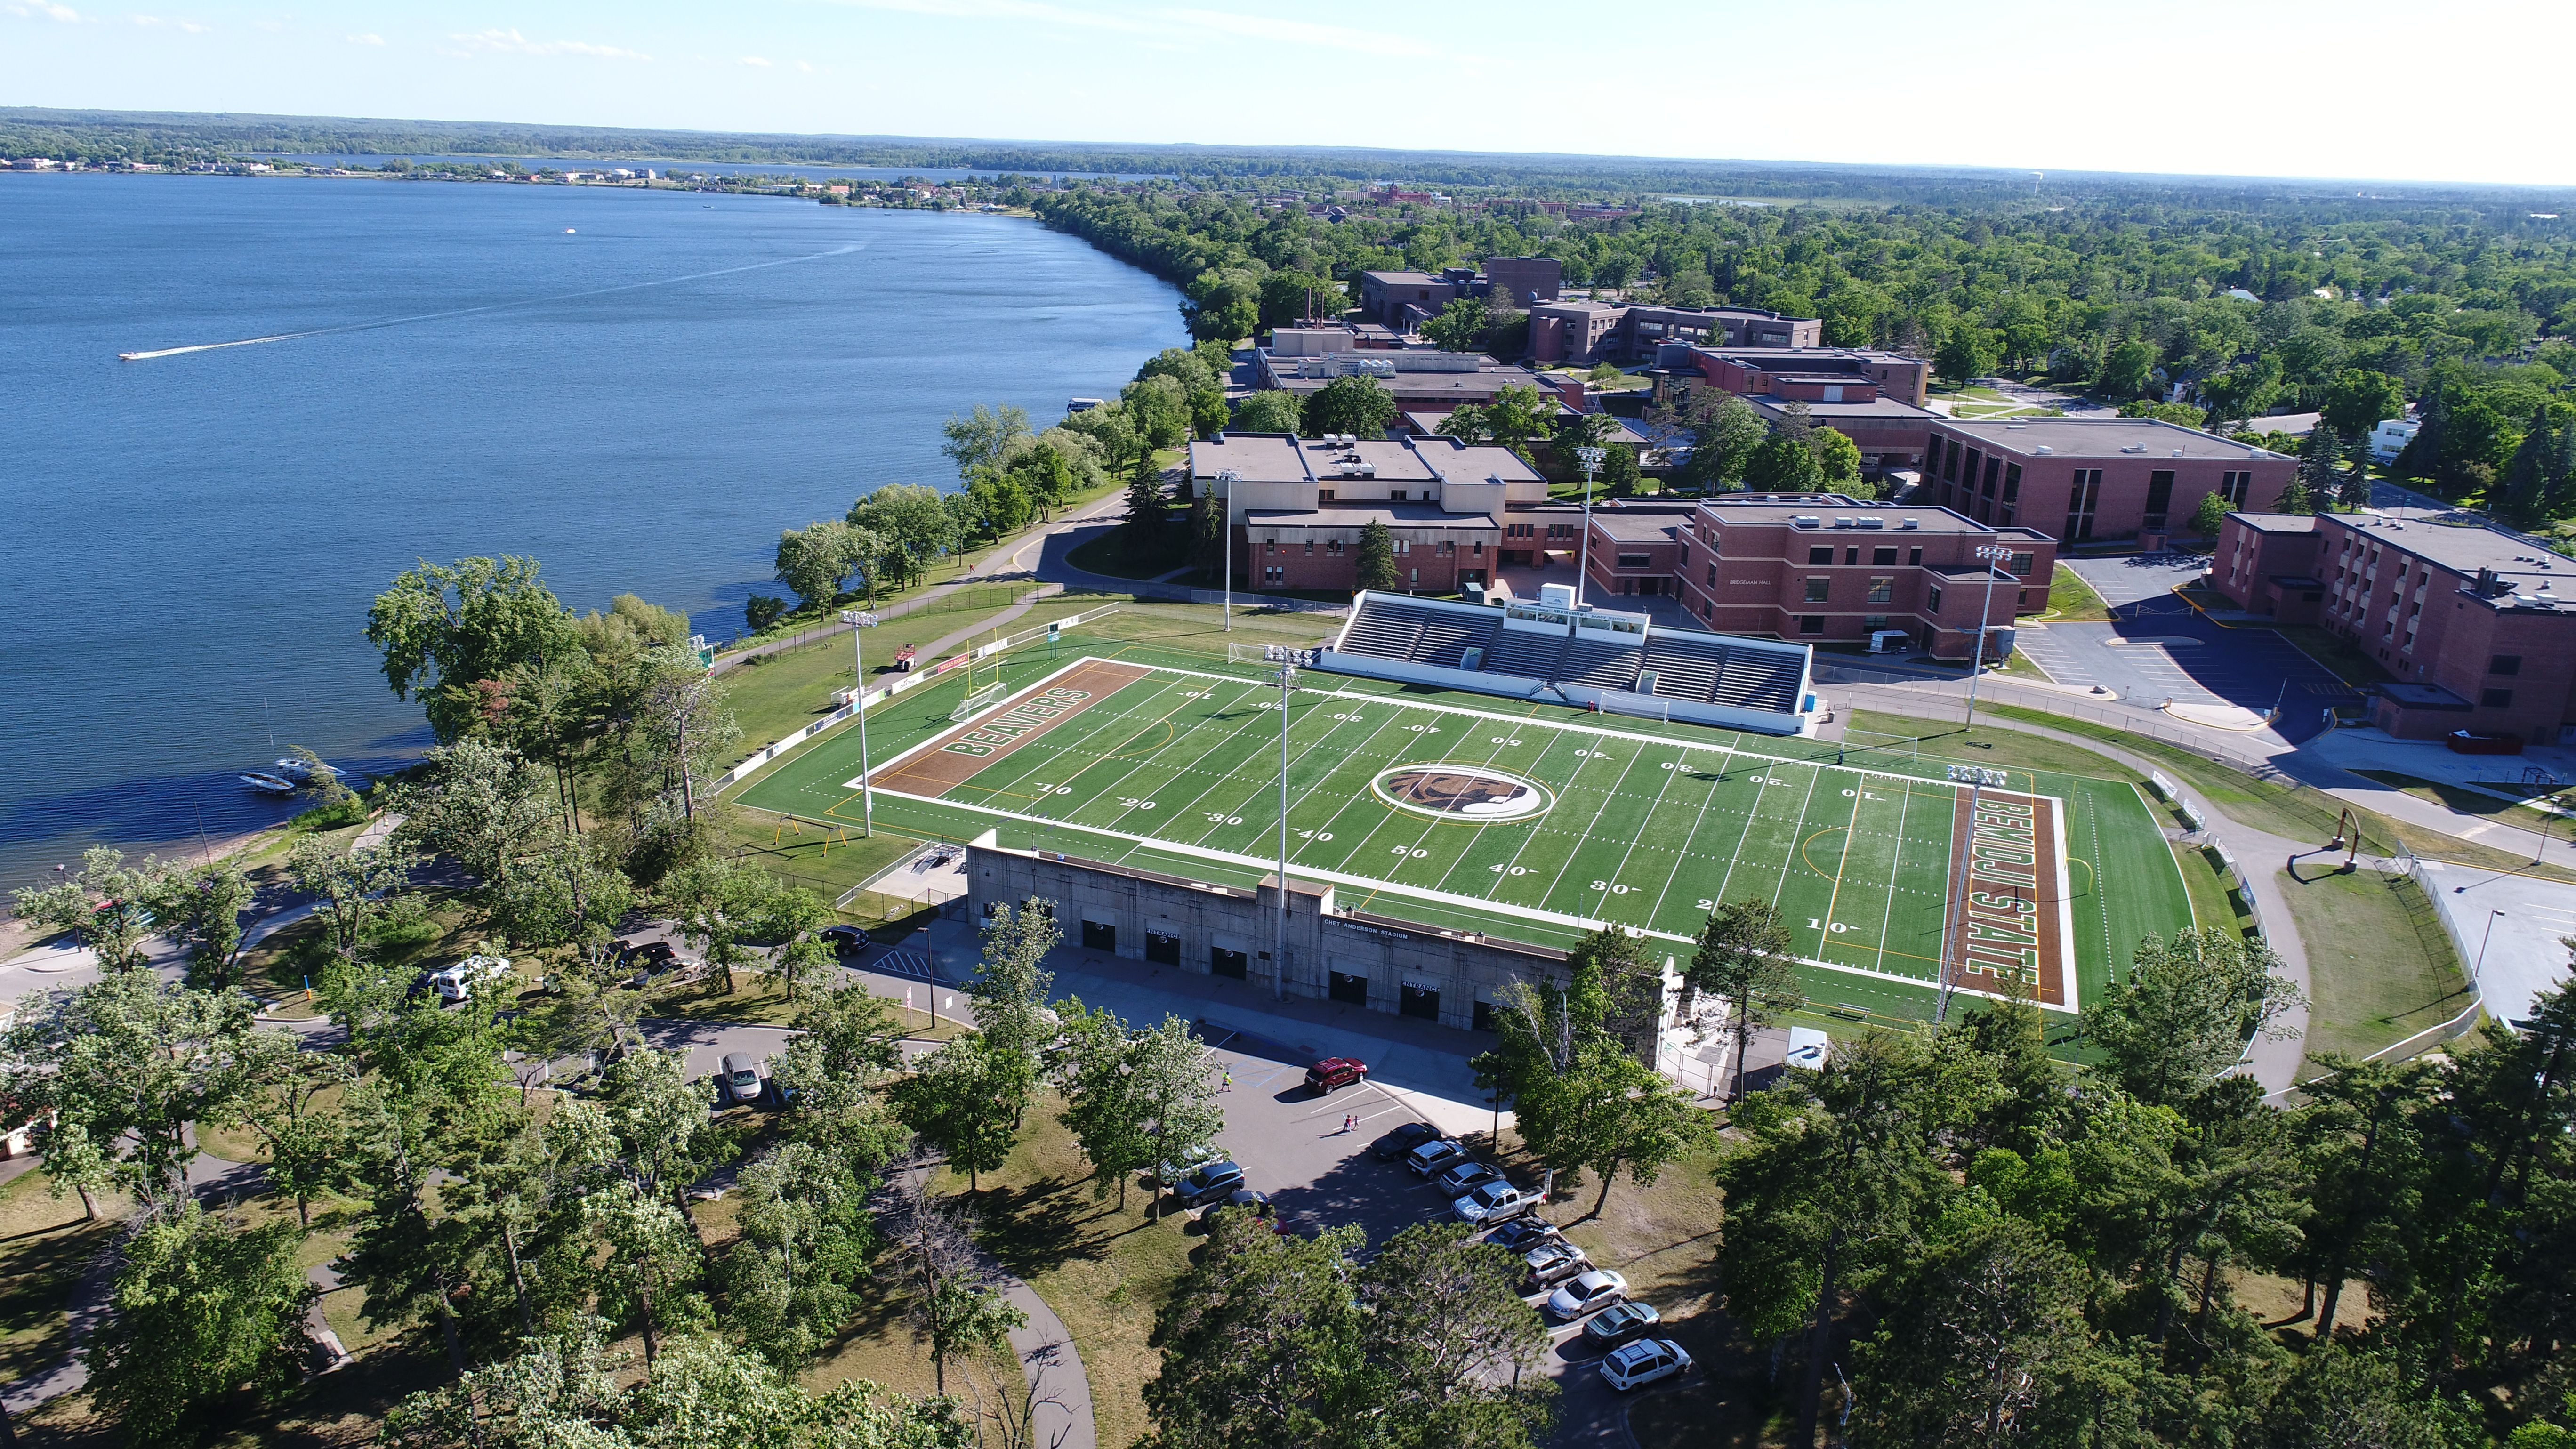 pin by scott faust on aerials and postcards of bemidji state university bemidji state university bemidji state university pinterest